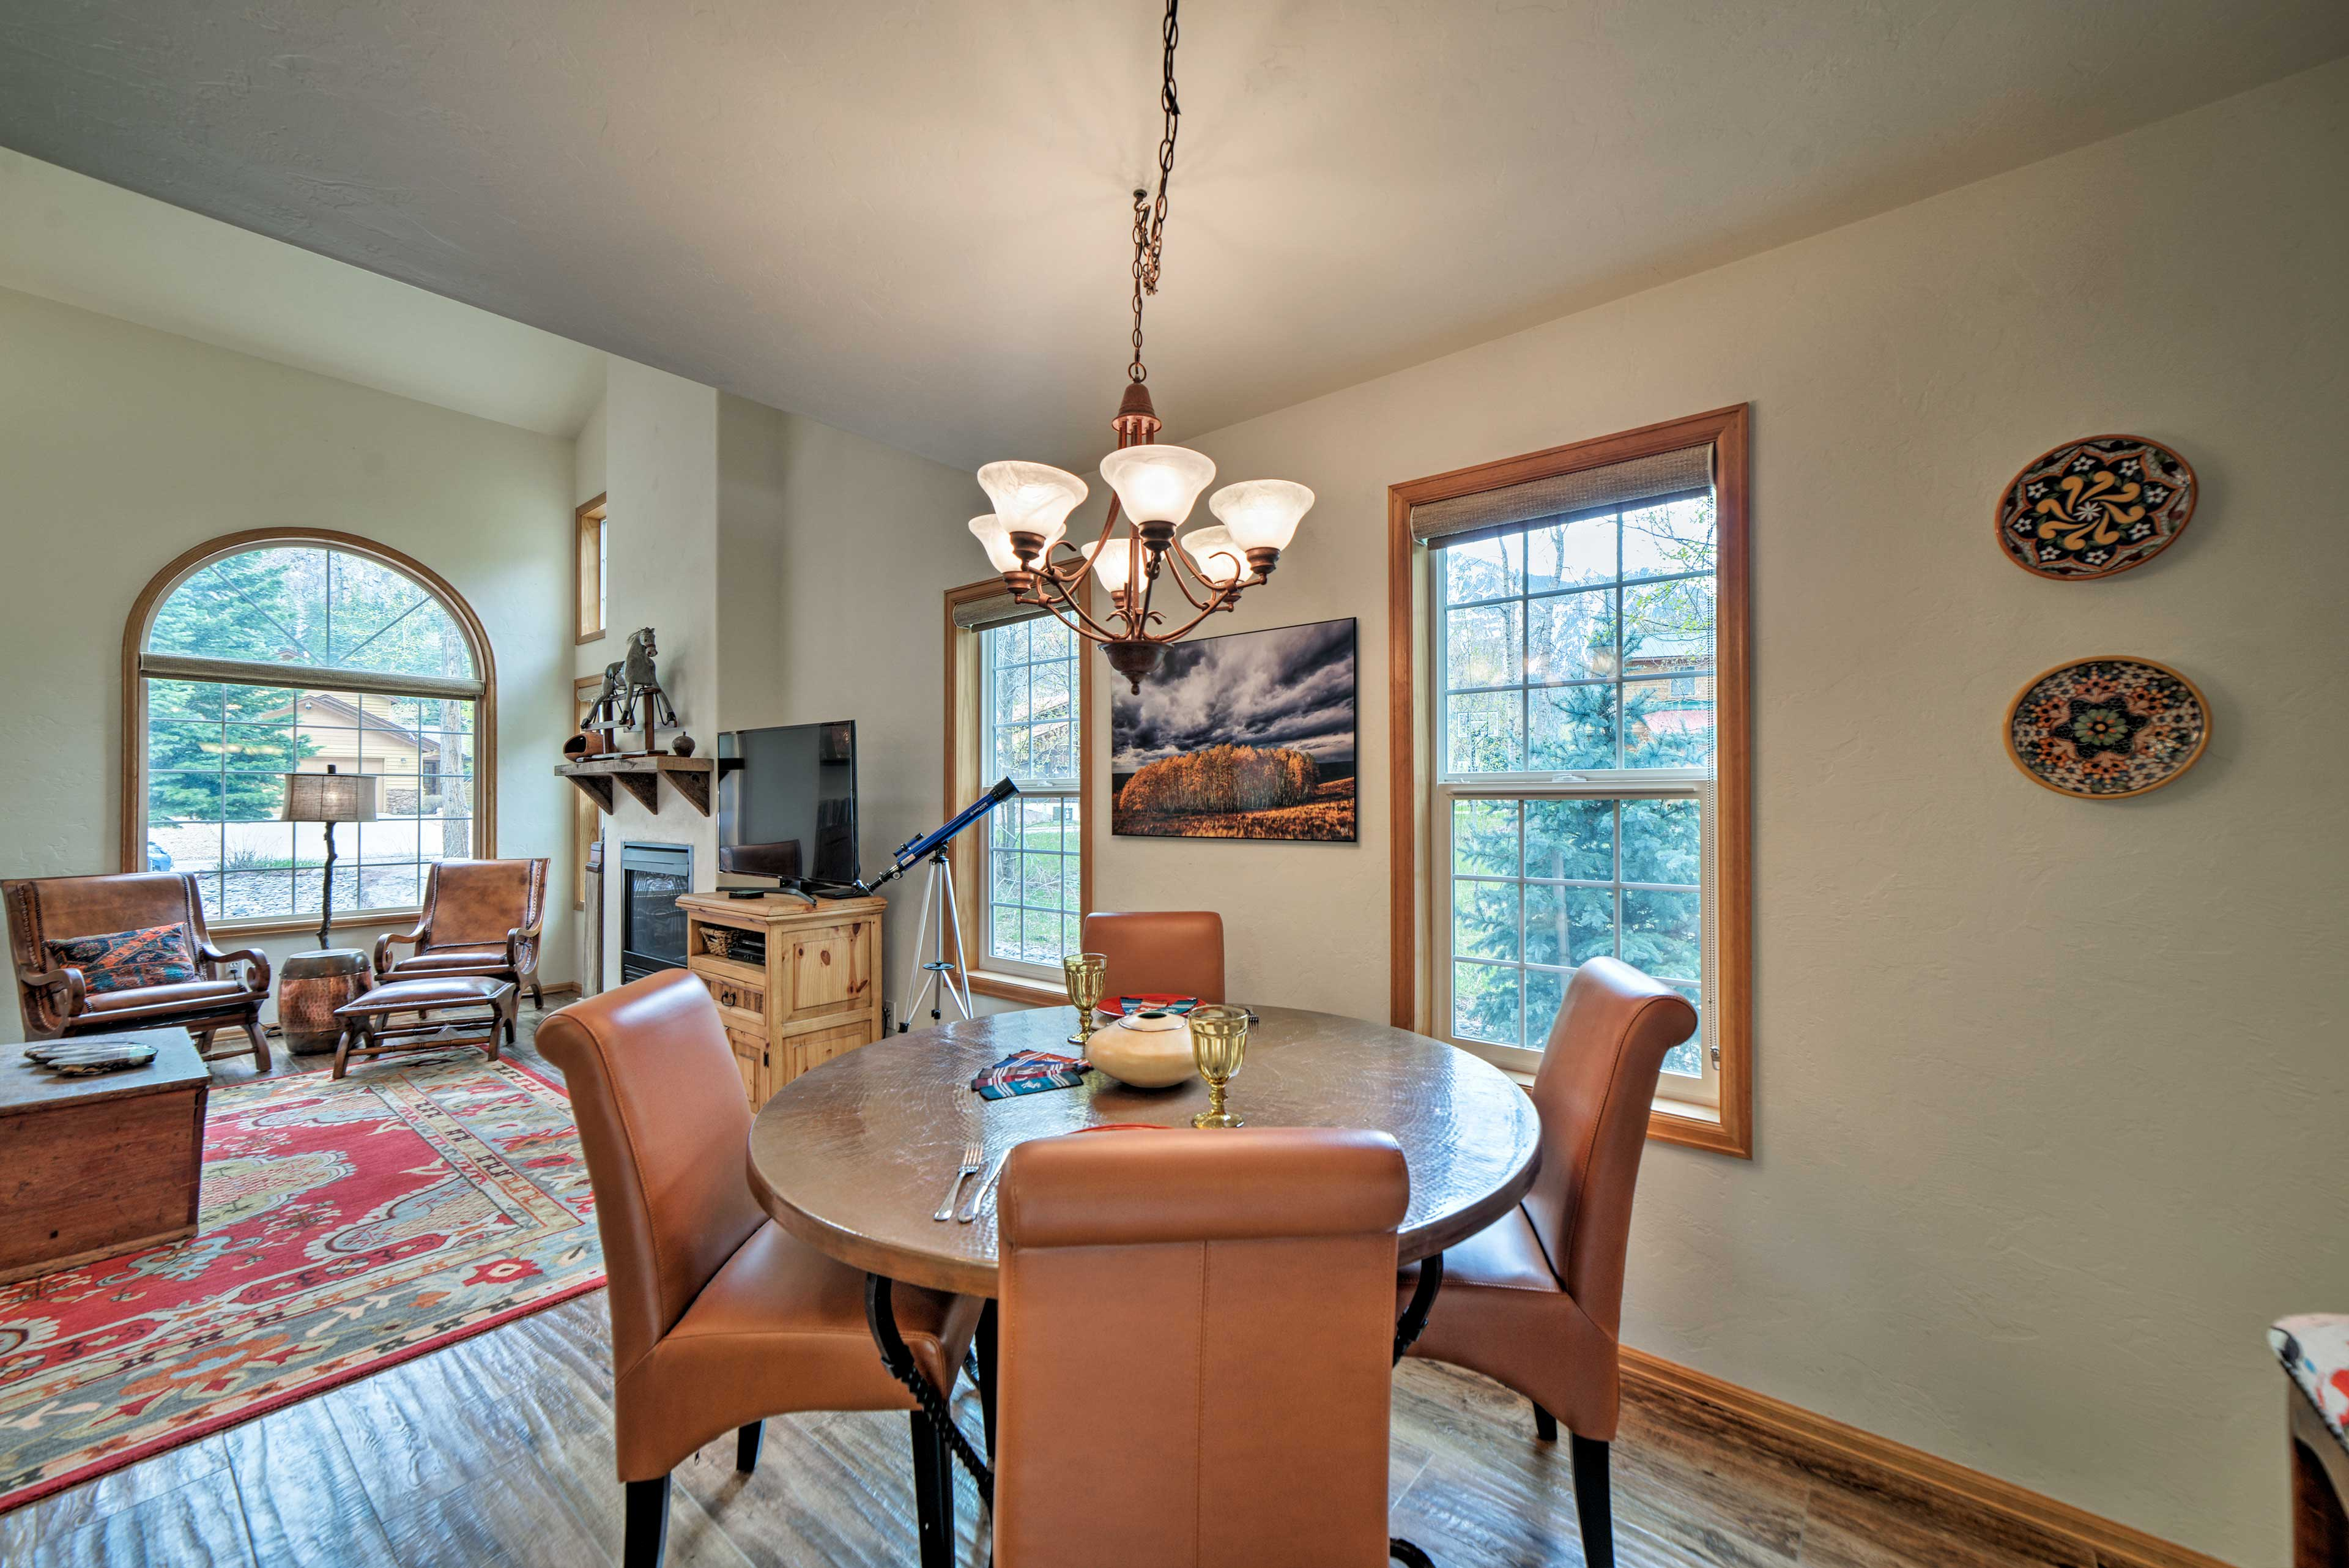 The large windows illuminate the entire living space.